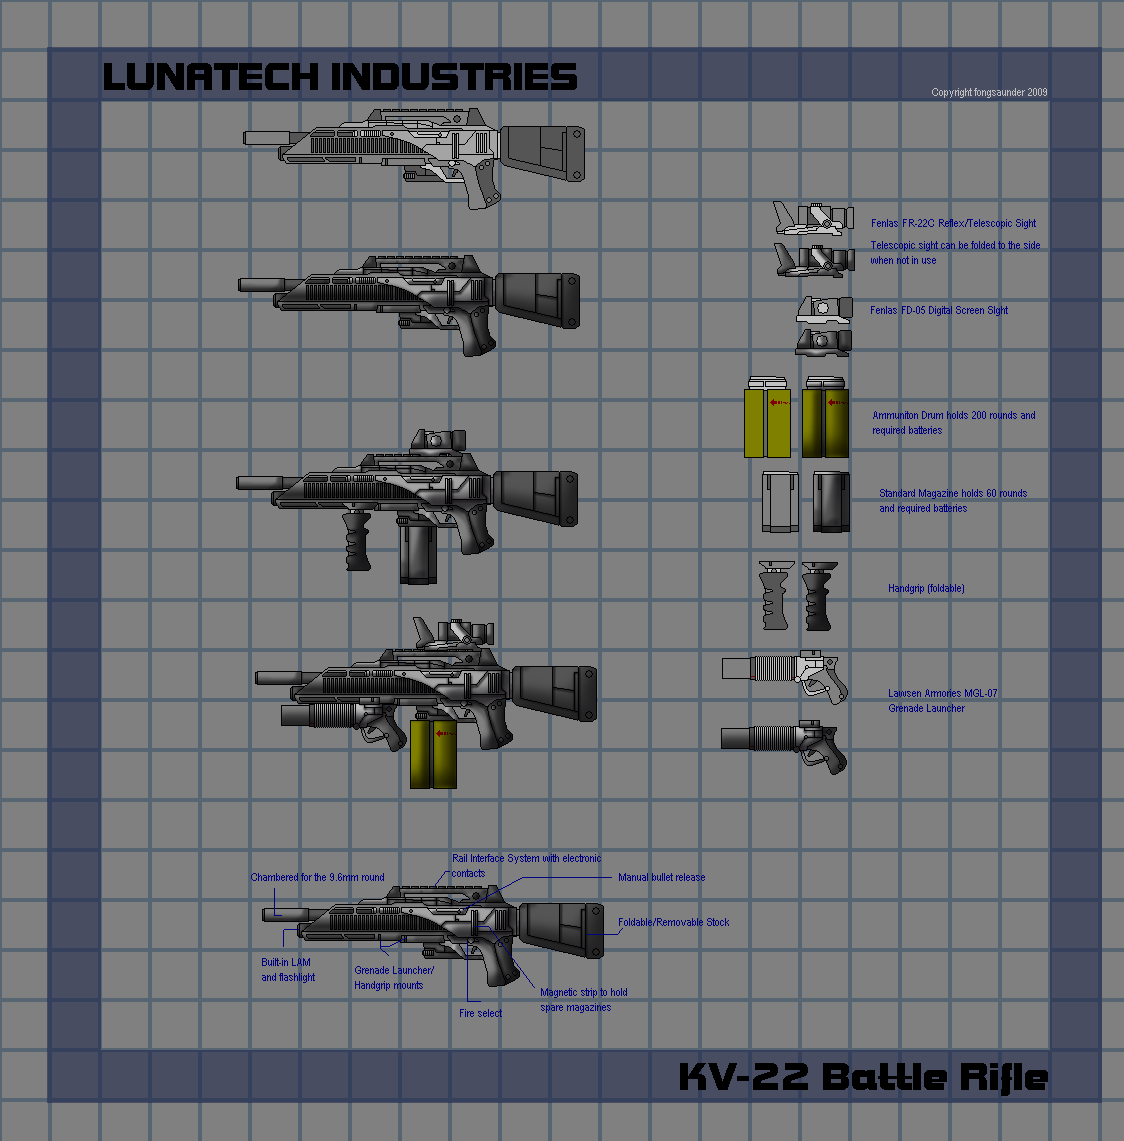 Lunatech KV-22 Battle Rifle by fongsaunder